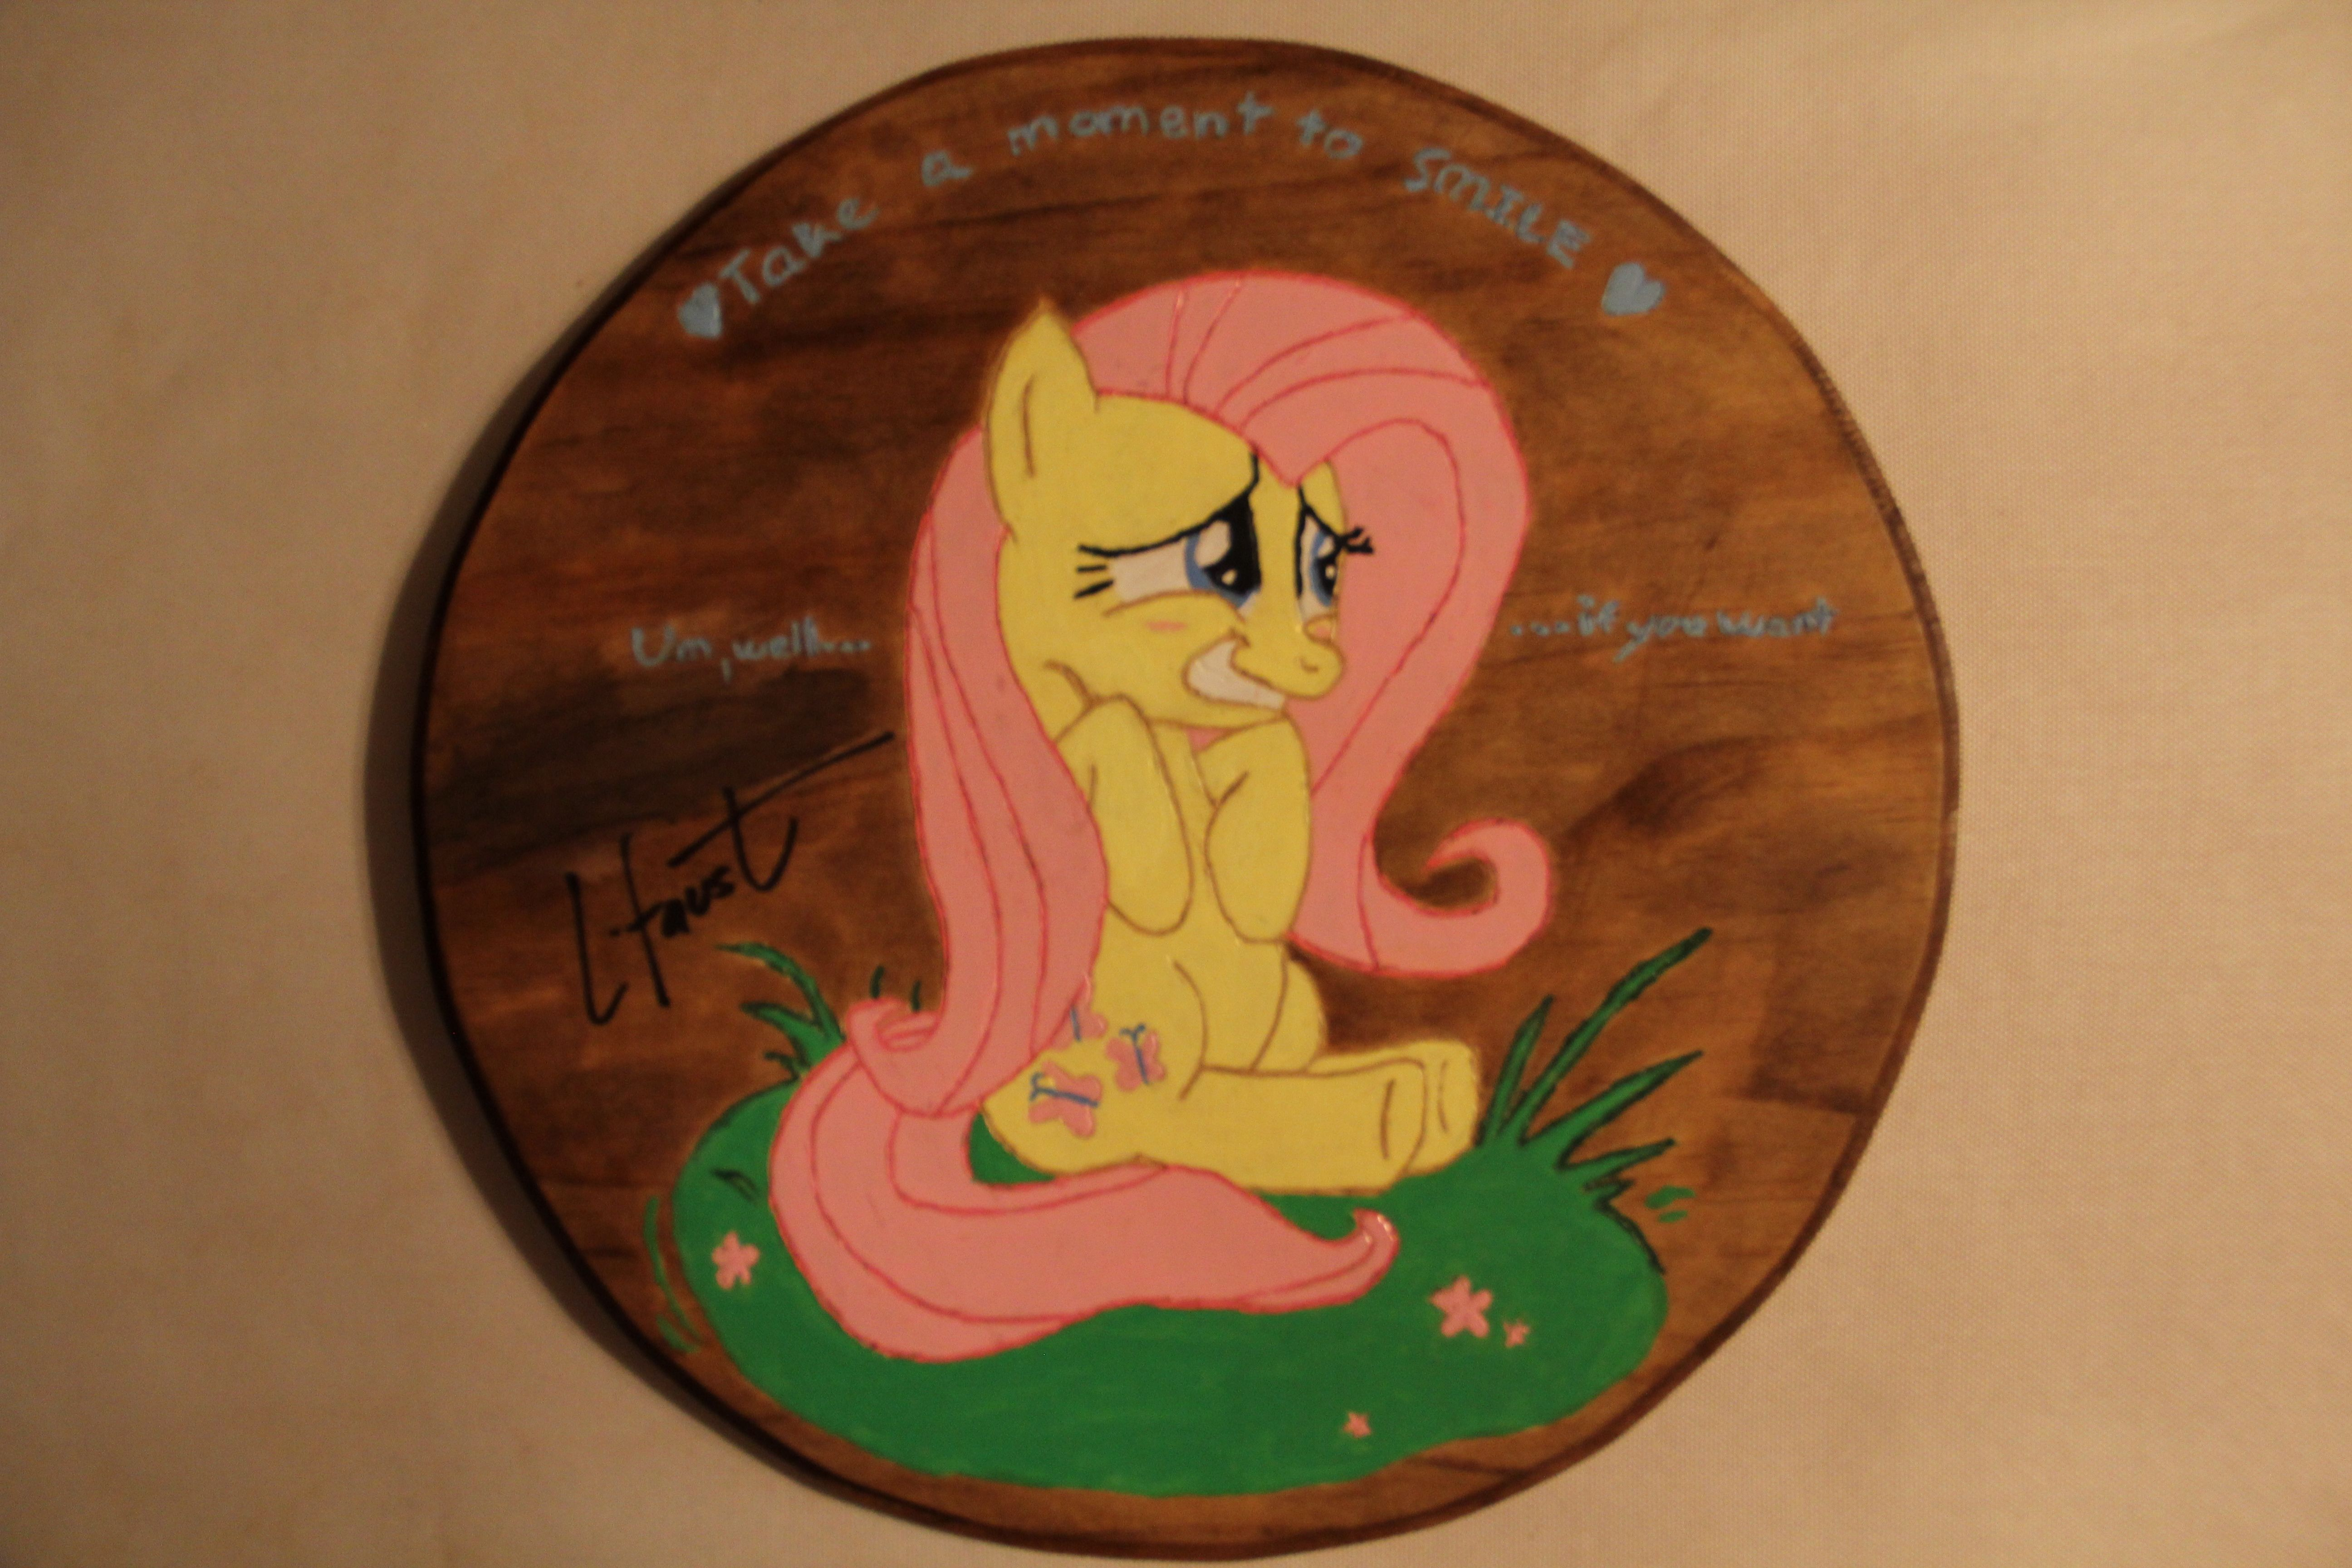 Watcher Contest - L. Faust Signed Prize! Interested in a really cool piece of art signed by Lauren Faust?  All you need is a DeviantArt account and to comment on this journal post.  Super easy and super worth it!